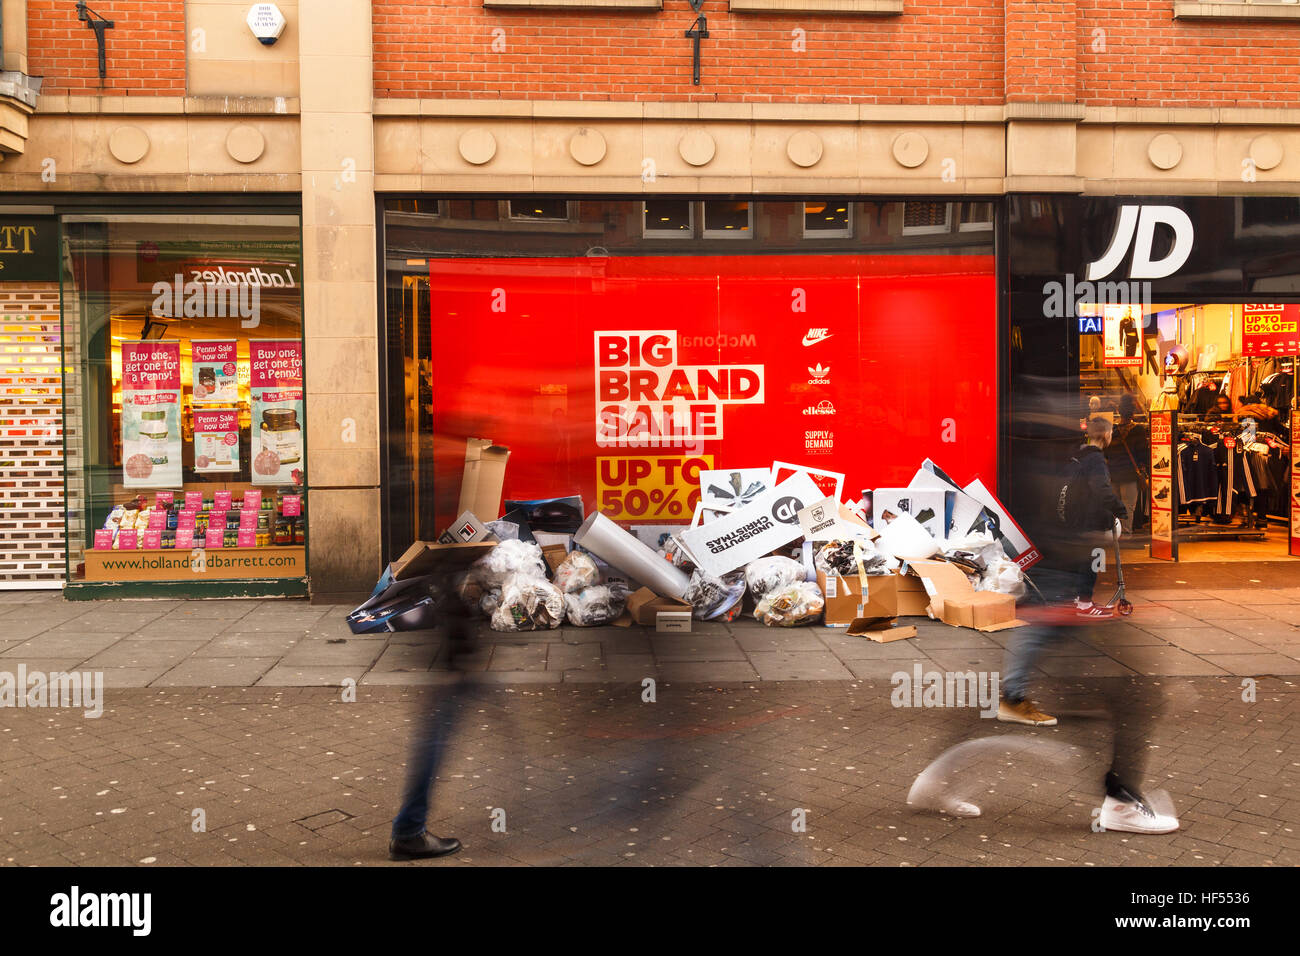 Shoppers pass, Boxing Day sale starts at JD Sports shop in Nottingham. In Nottingham, England. On 26th December - Stock Image